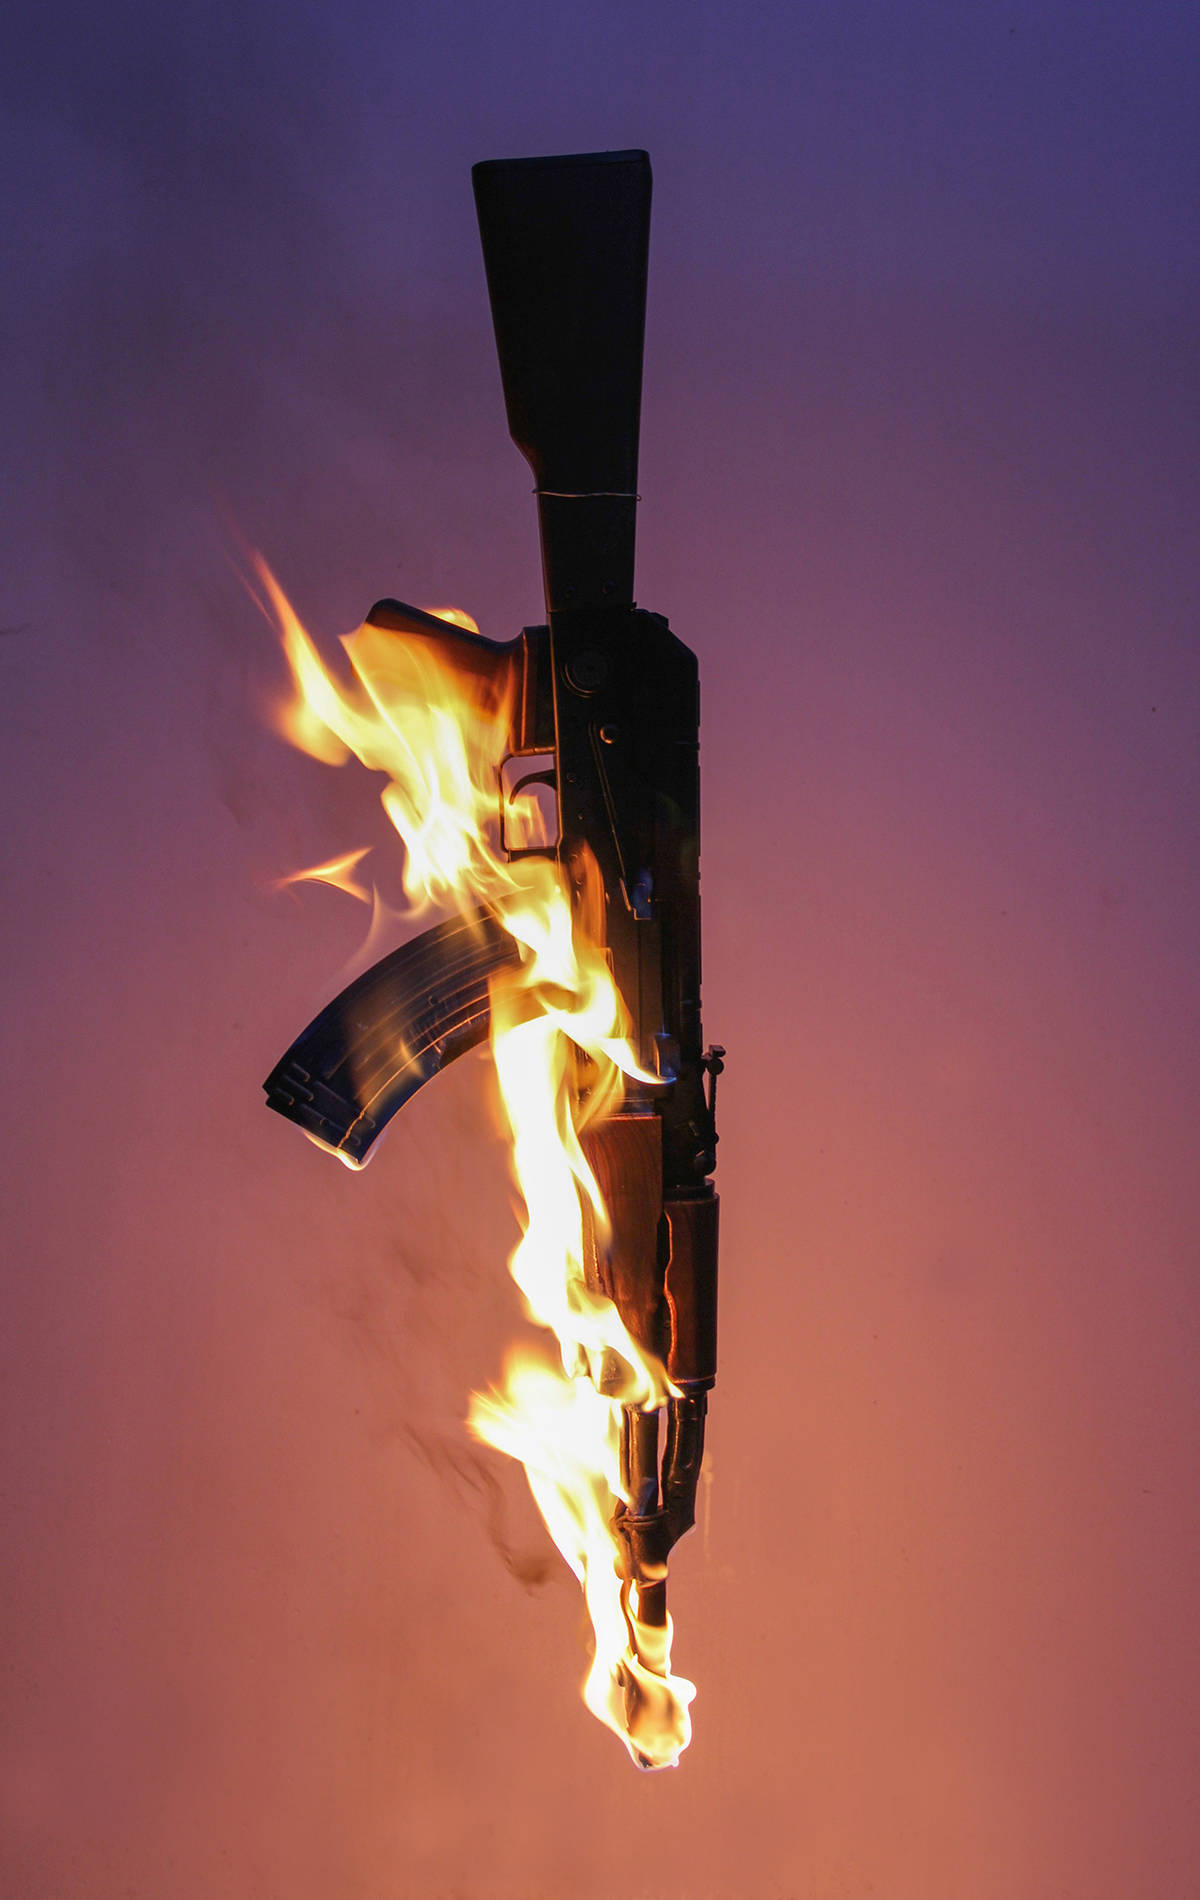 Photograph of an AK-47 machine gun set on fire against a purple and orange backdrop.